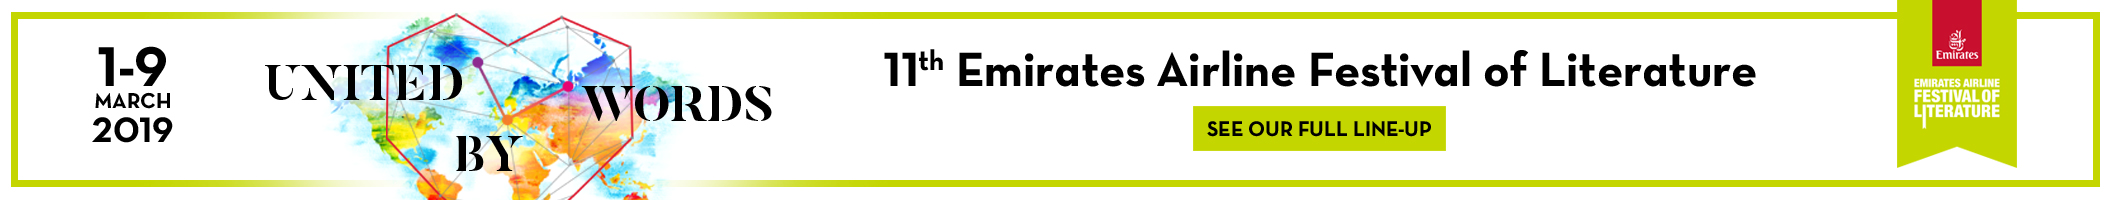 Emirates Airline Festival of Literature landing page banner 2112x200